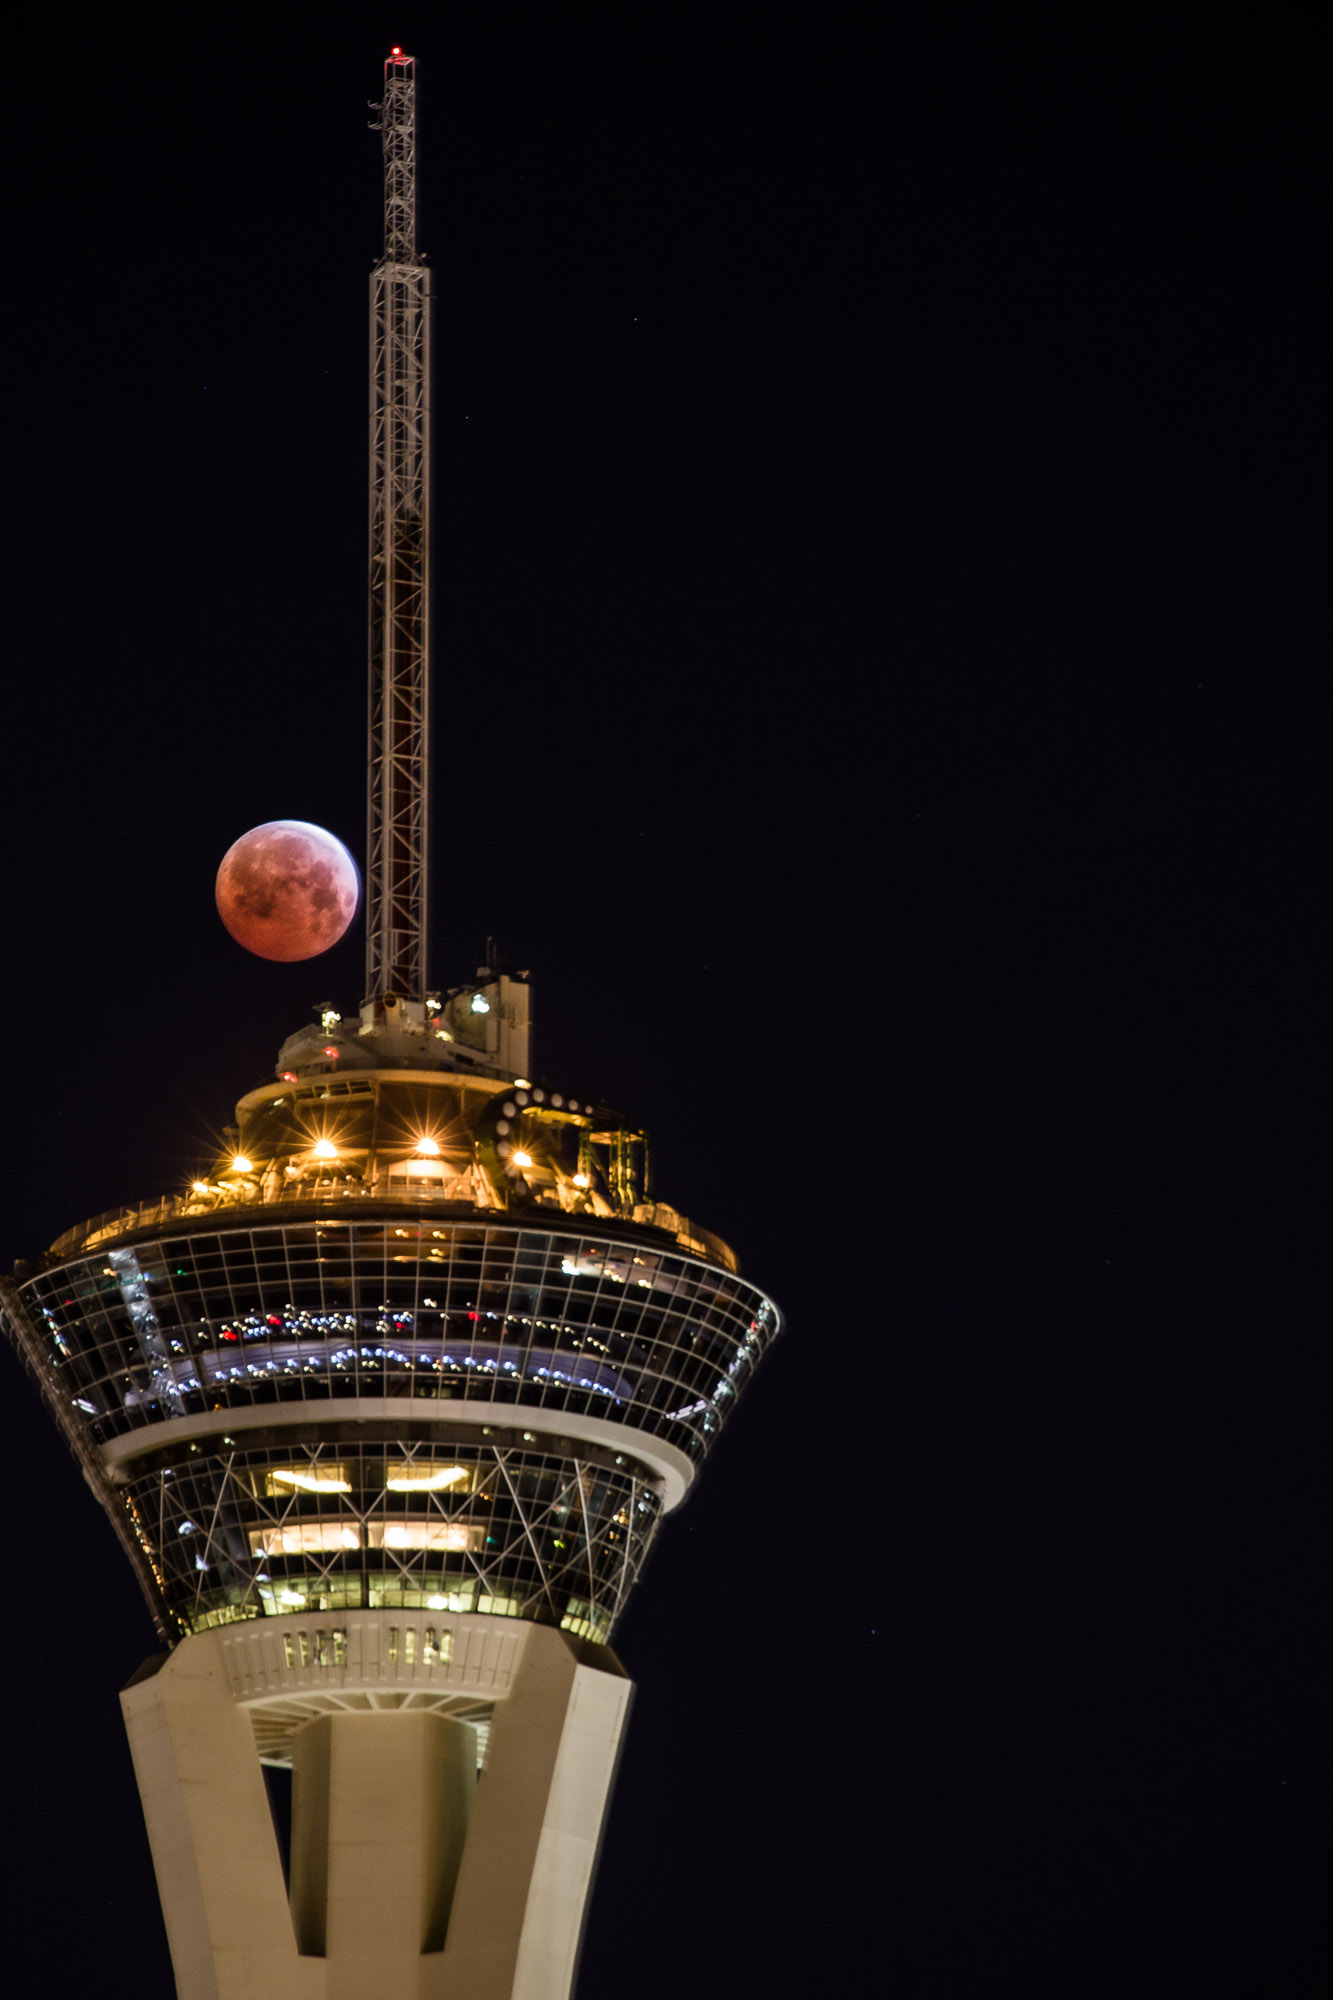 Total Lunar Eclipse in Las Vegas: Tyler Leavitt